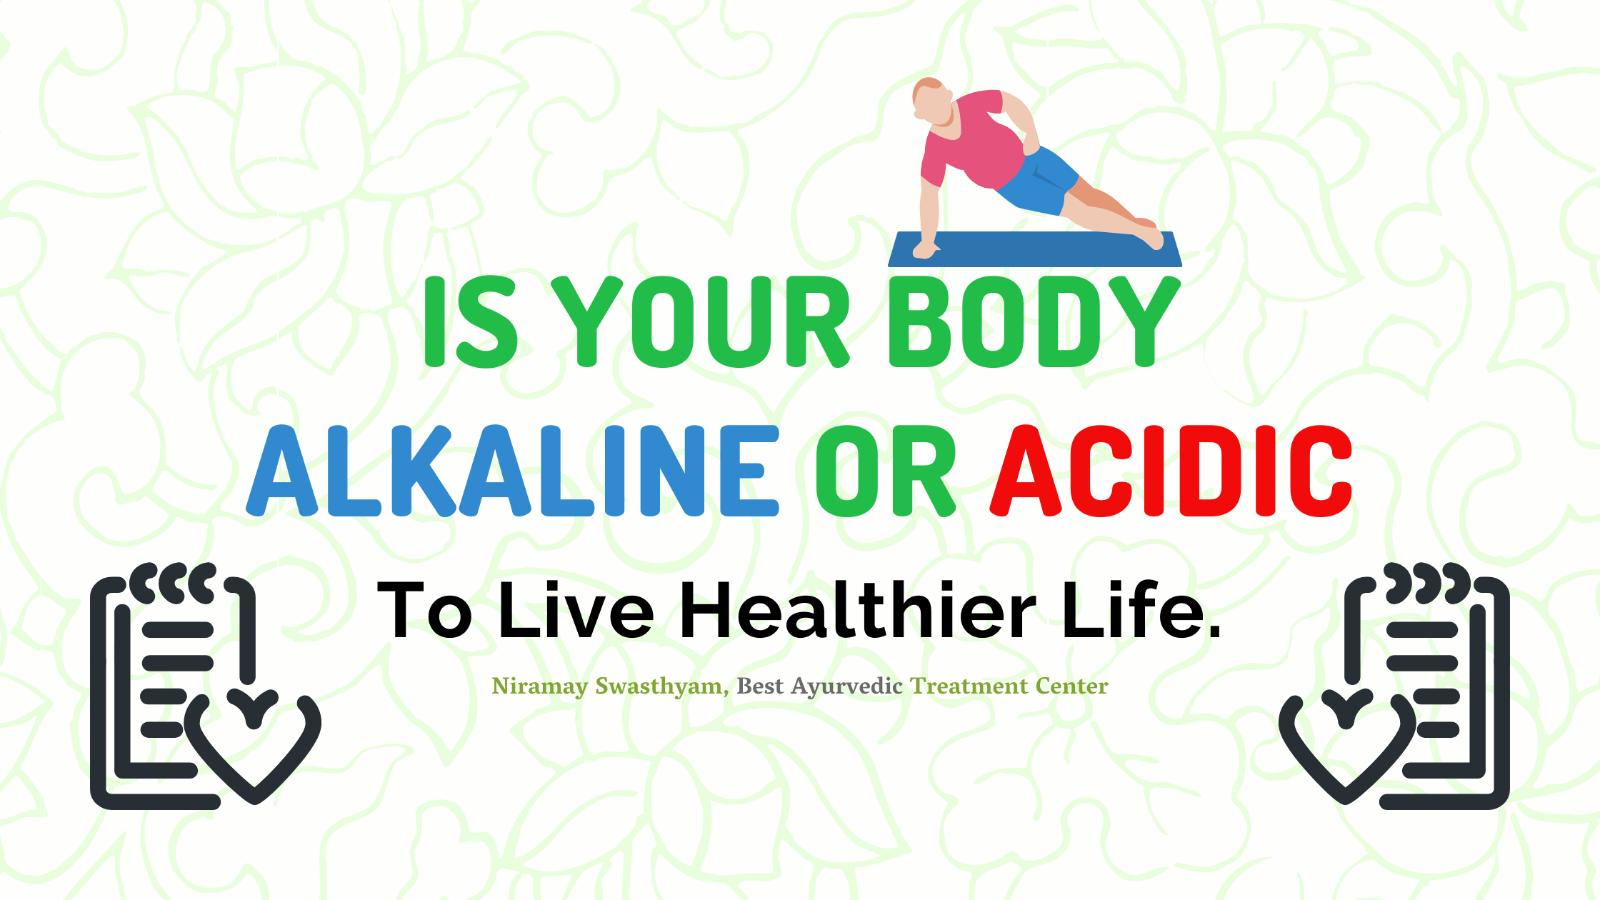 Is your body alkaline or acidic